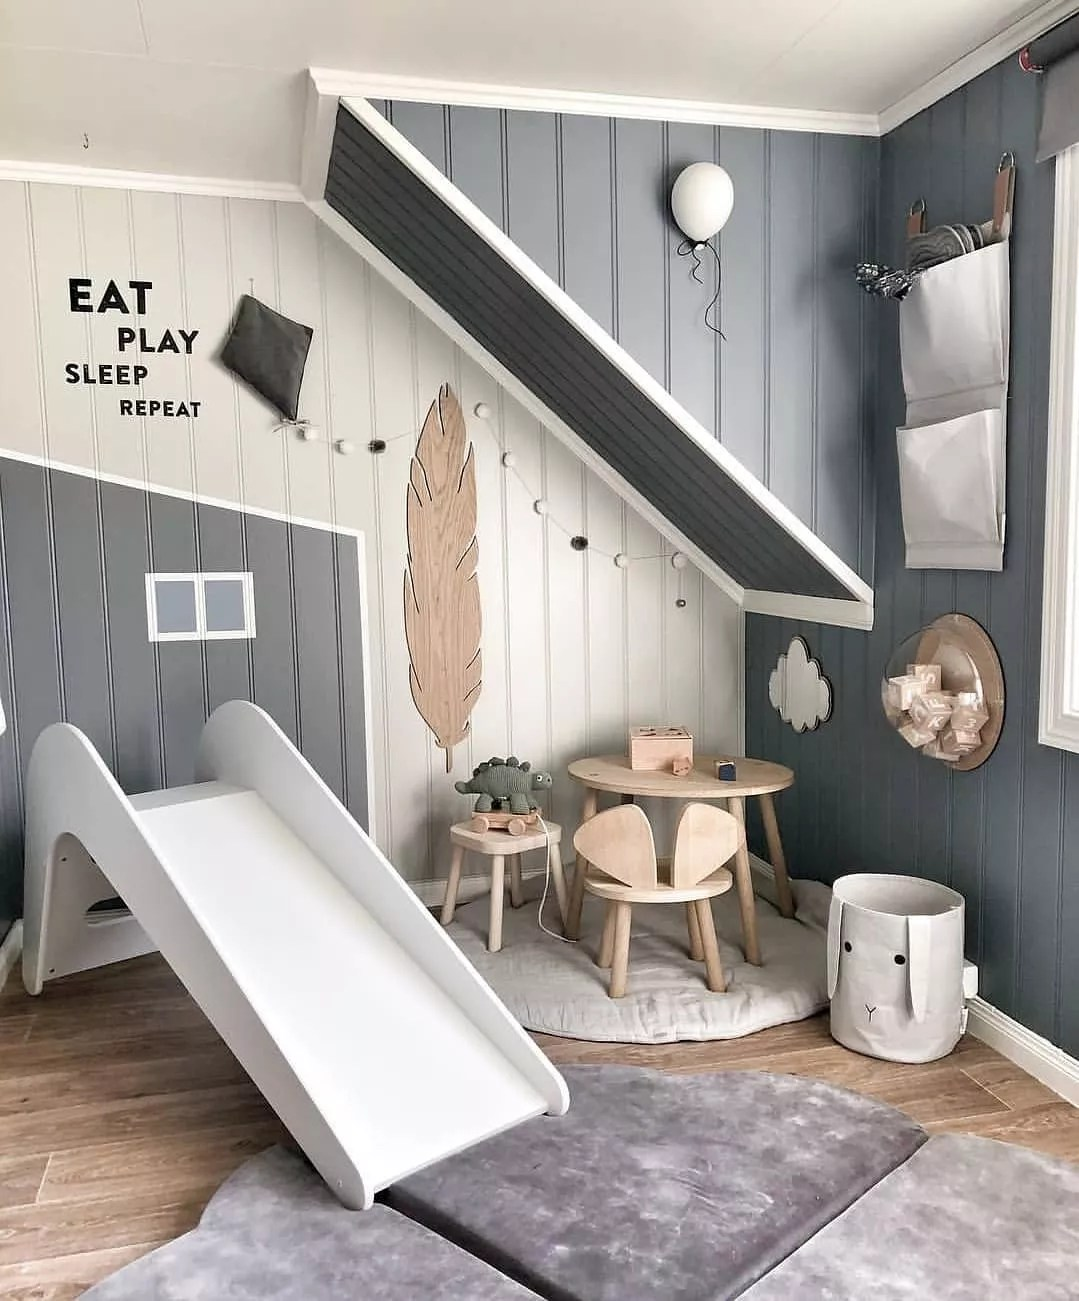 Grey kids room with fuzzy rug and white slide. Photo by Instagram user @jupiduu_original